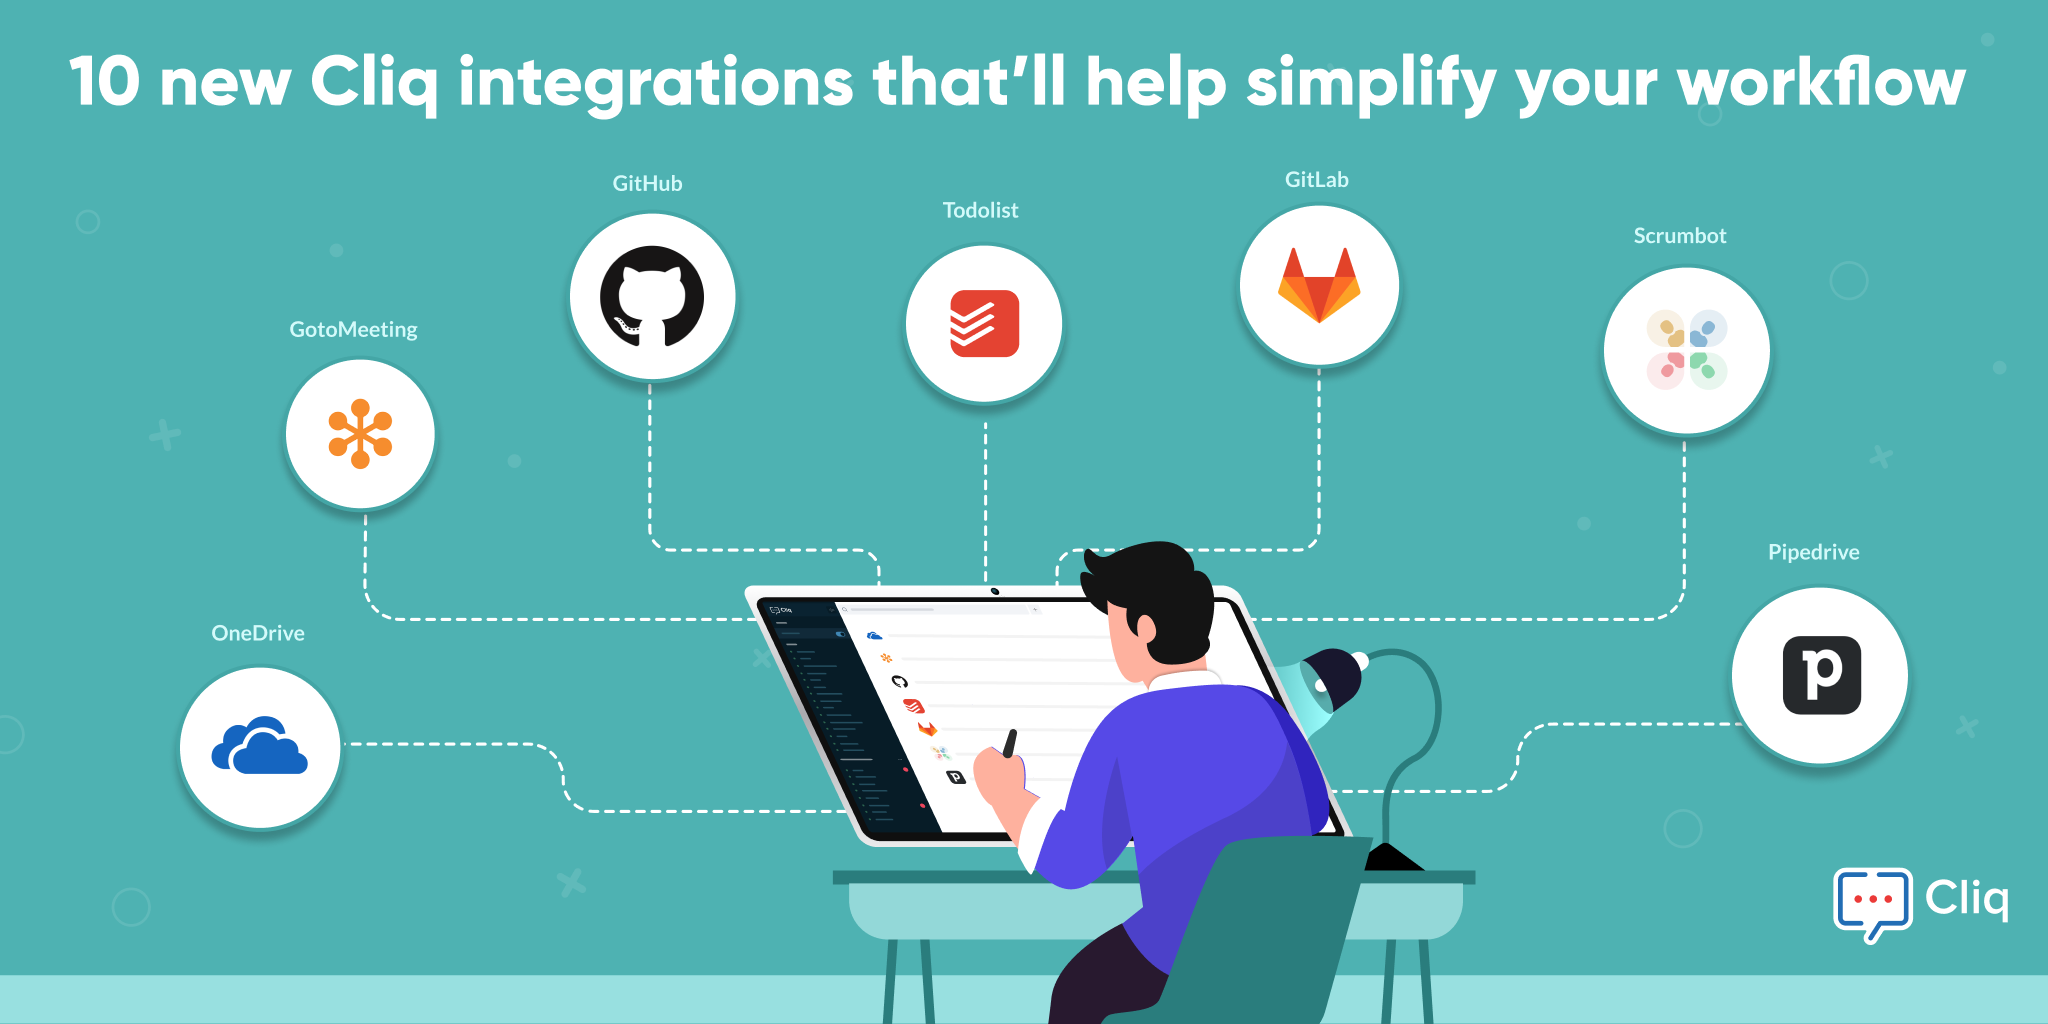 10 new Cliq integrations to simplify your workflow